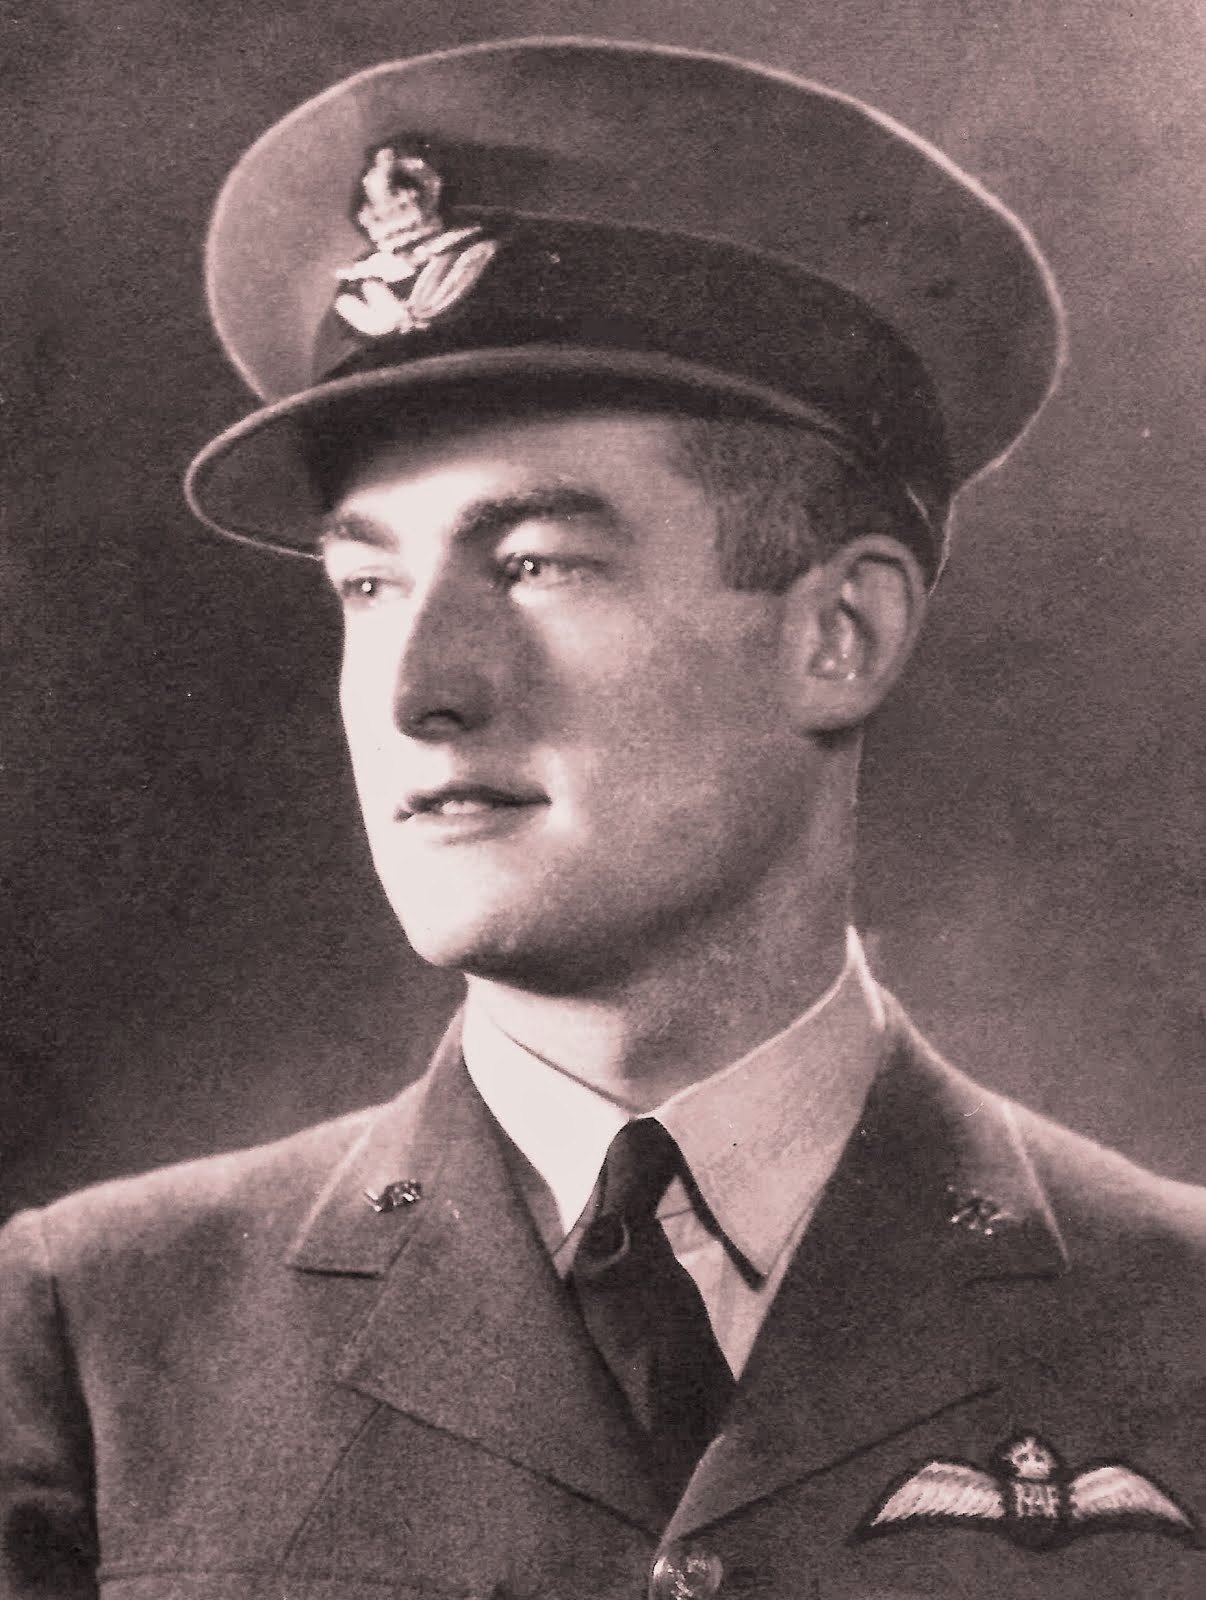 (928057 - 116904) Pilot Officer Frank James Jemmett - No. 601 Squadron